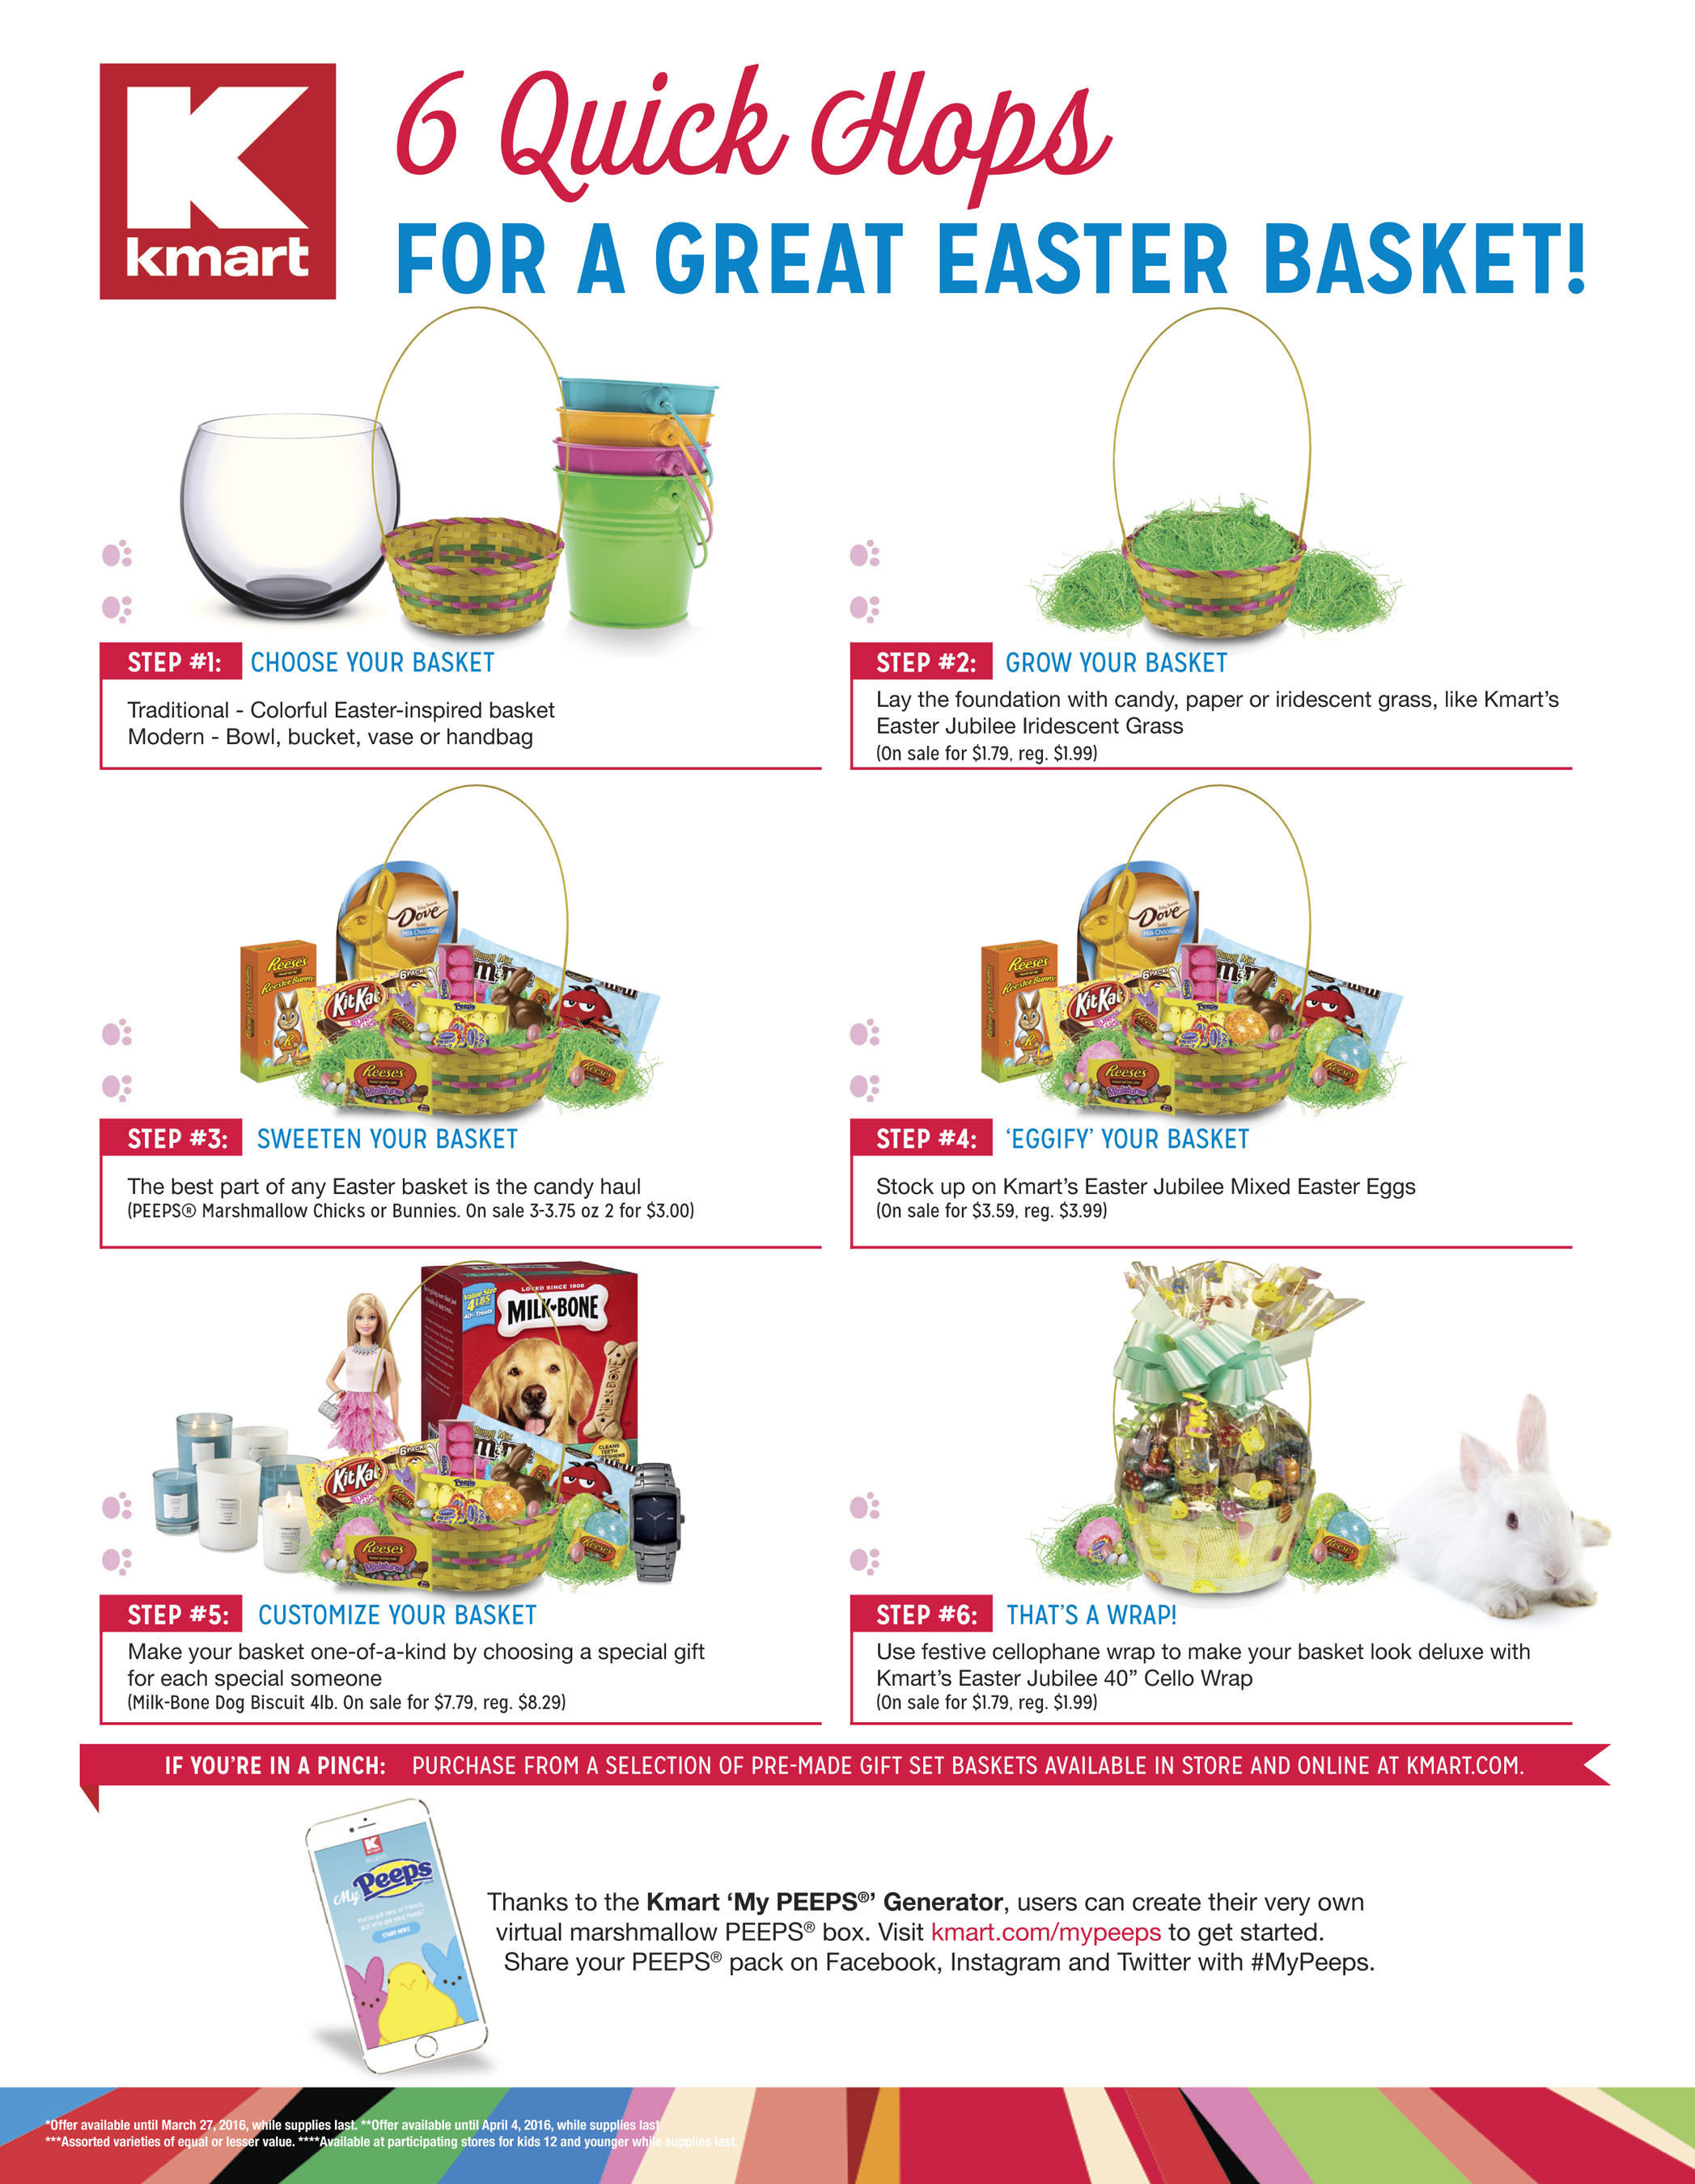 For those looking for a fresh take on an Easter classic, Kmart breaks down the steps to create brag-worthy ...